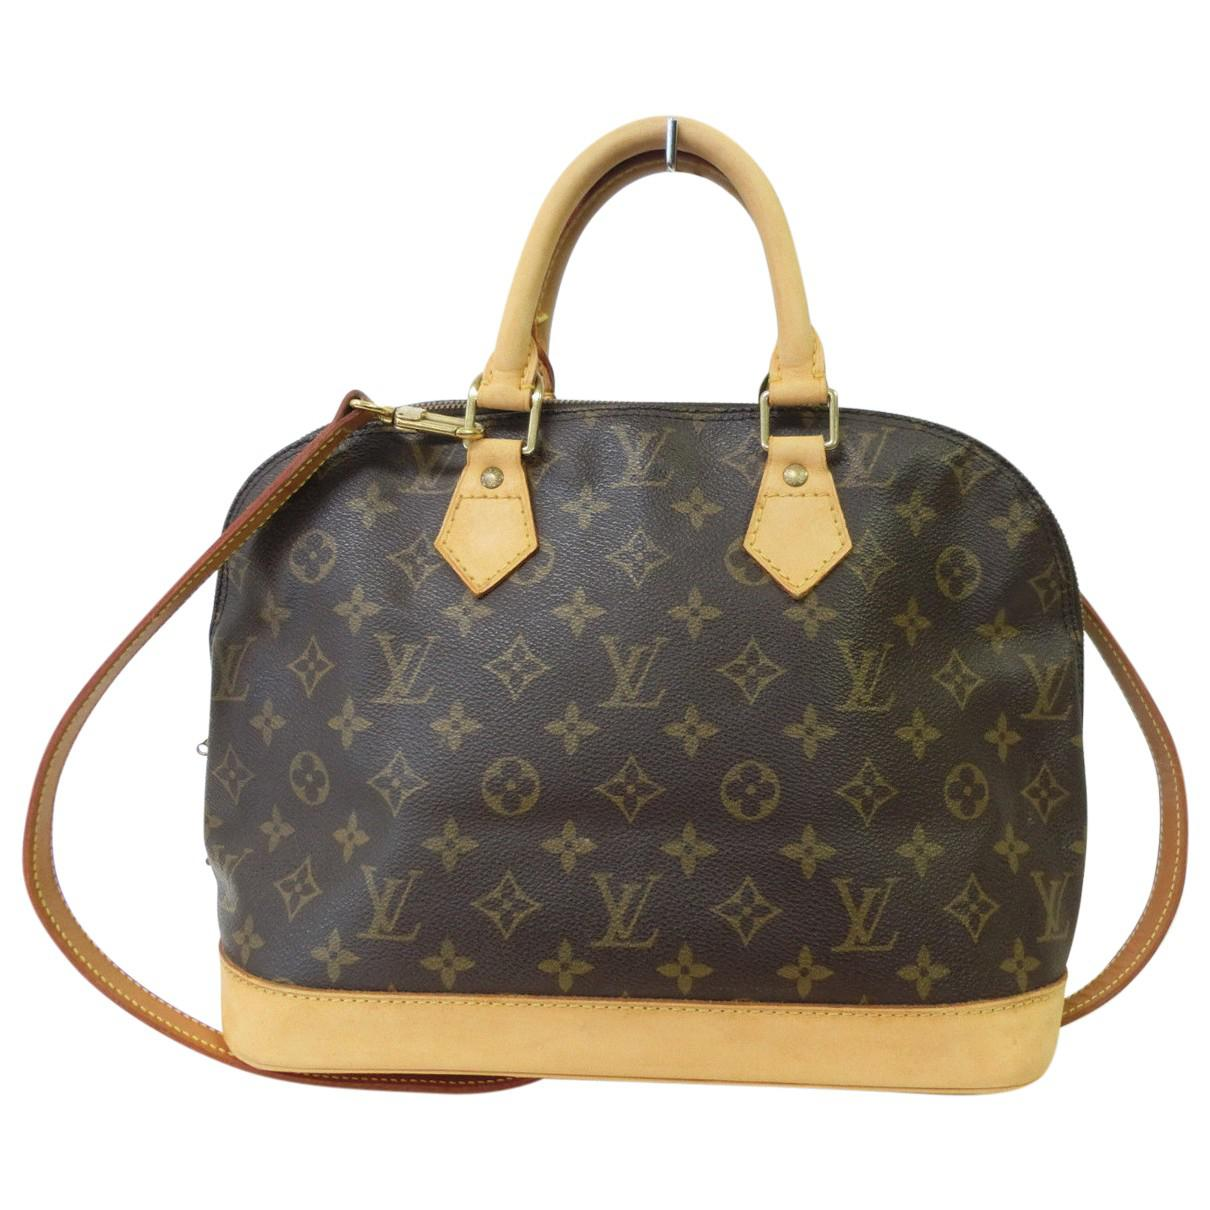 MR. Pre-owned - Leather handbag 2QuxD